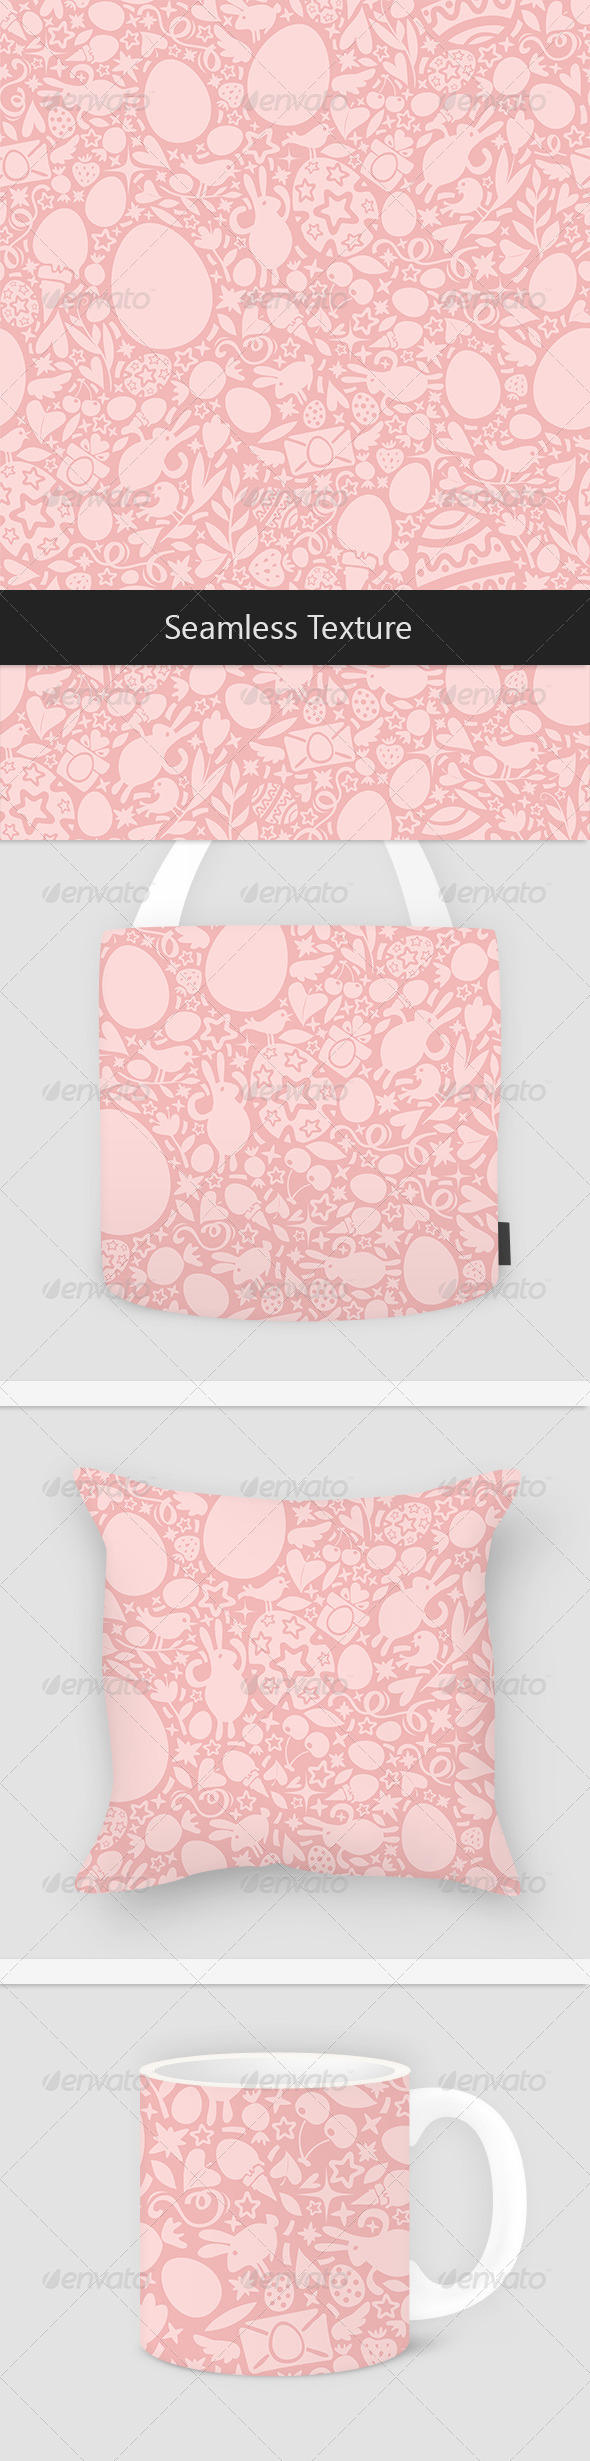 GraphicRiver Easter Seamless Pattern in Pink Colors 7407882